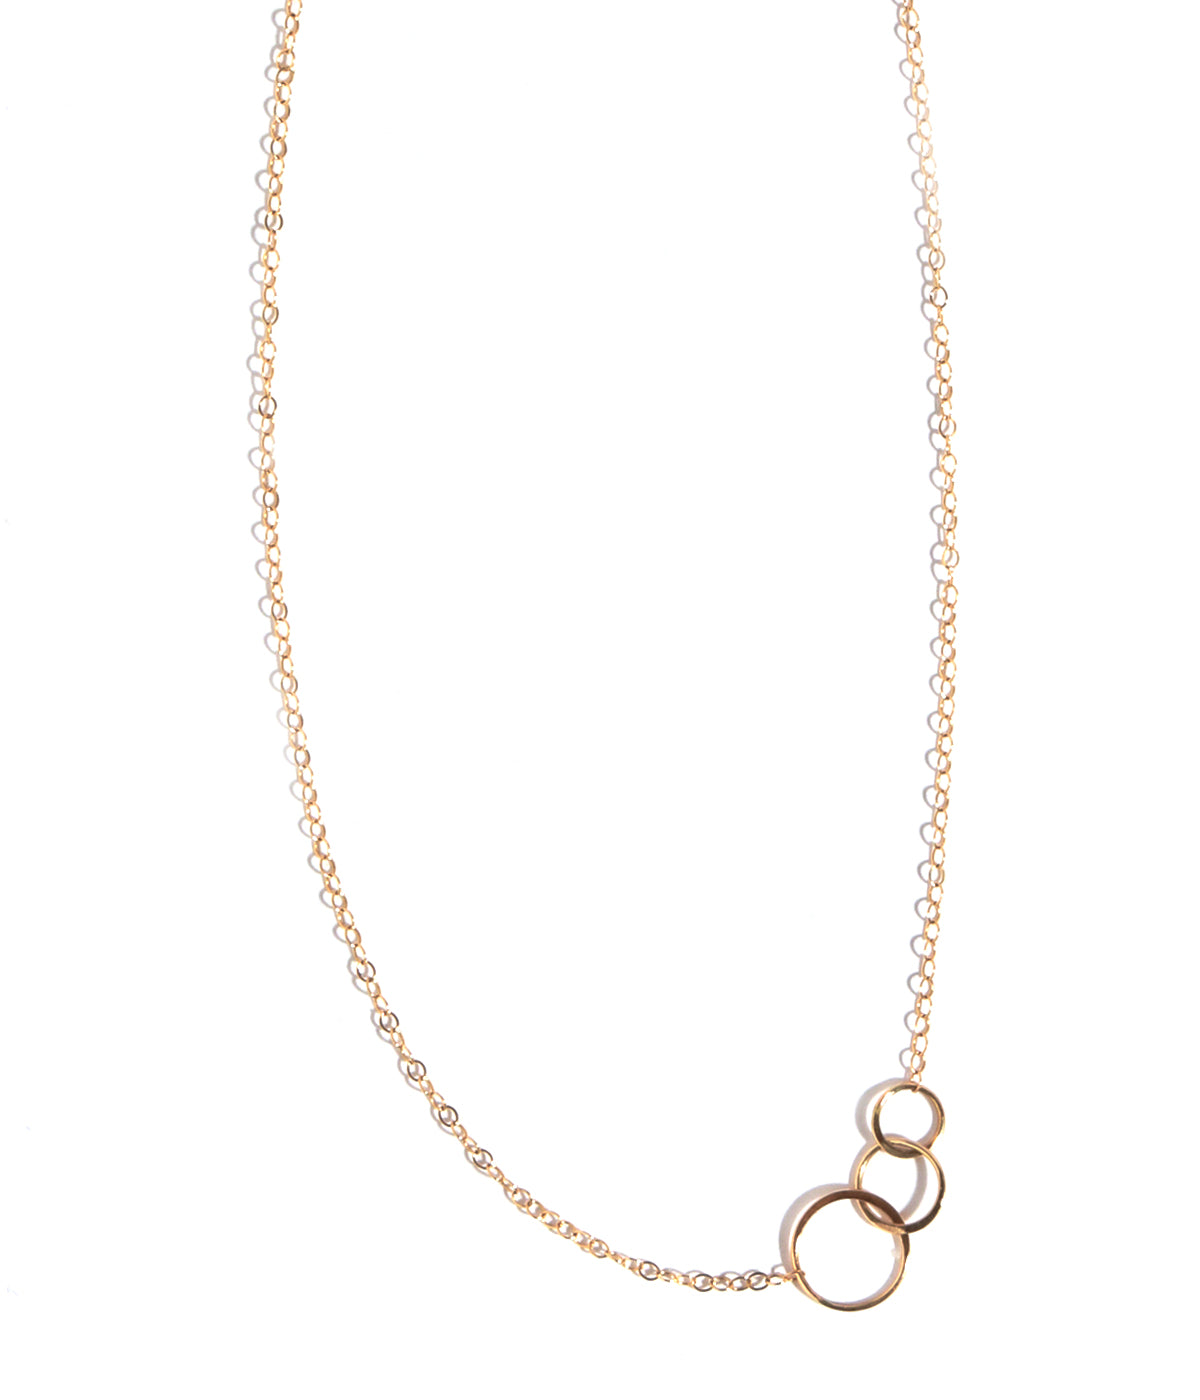 Graduated circle necklace - Melissa Joy Manning Jewelry